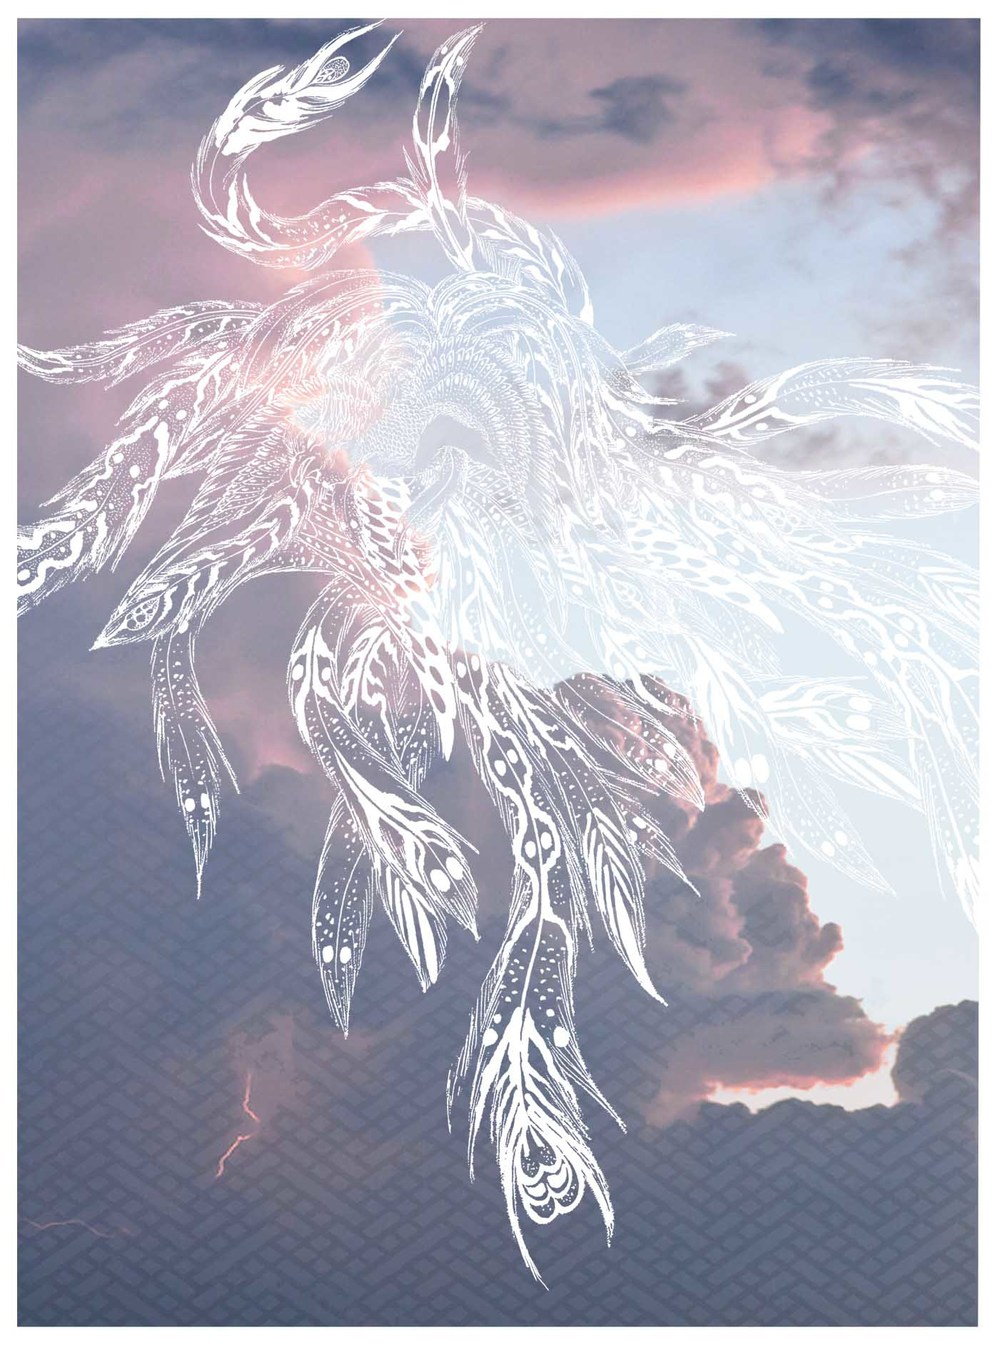 Phoenix Cloud Print - Horiyoshi The Third X Bella Gomez